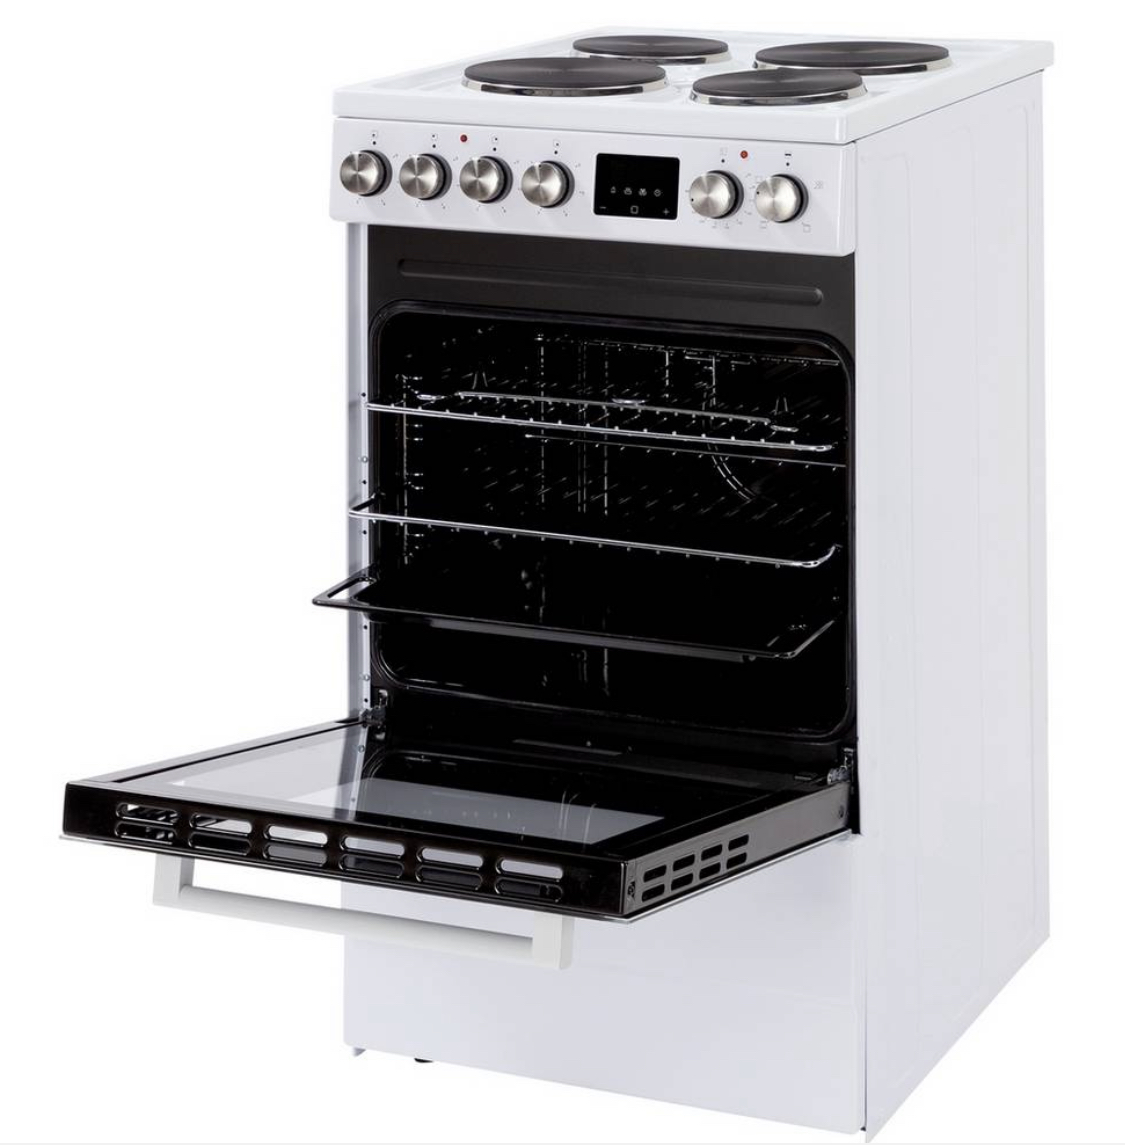 New World NWLS50SEW 50cm Single Electric Cooker - White